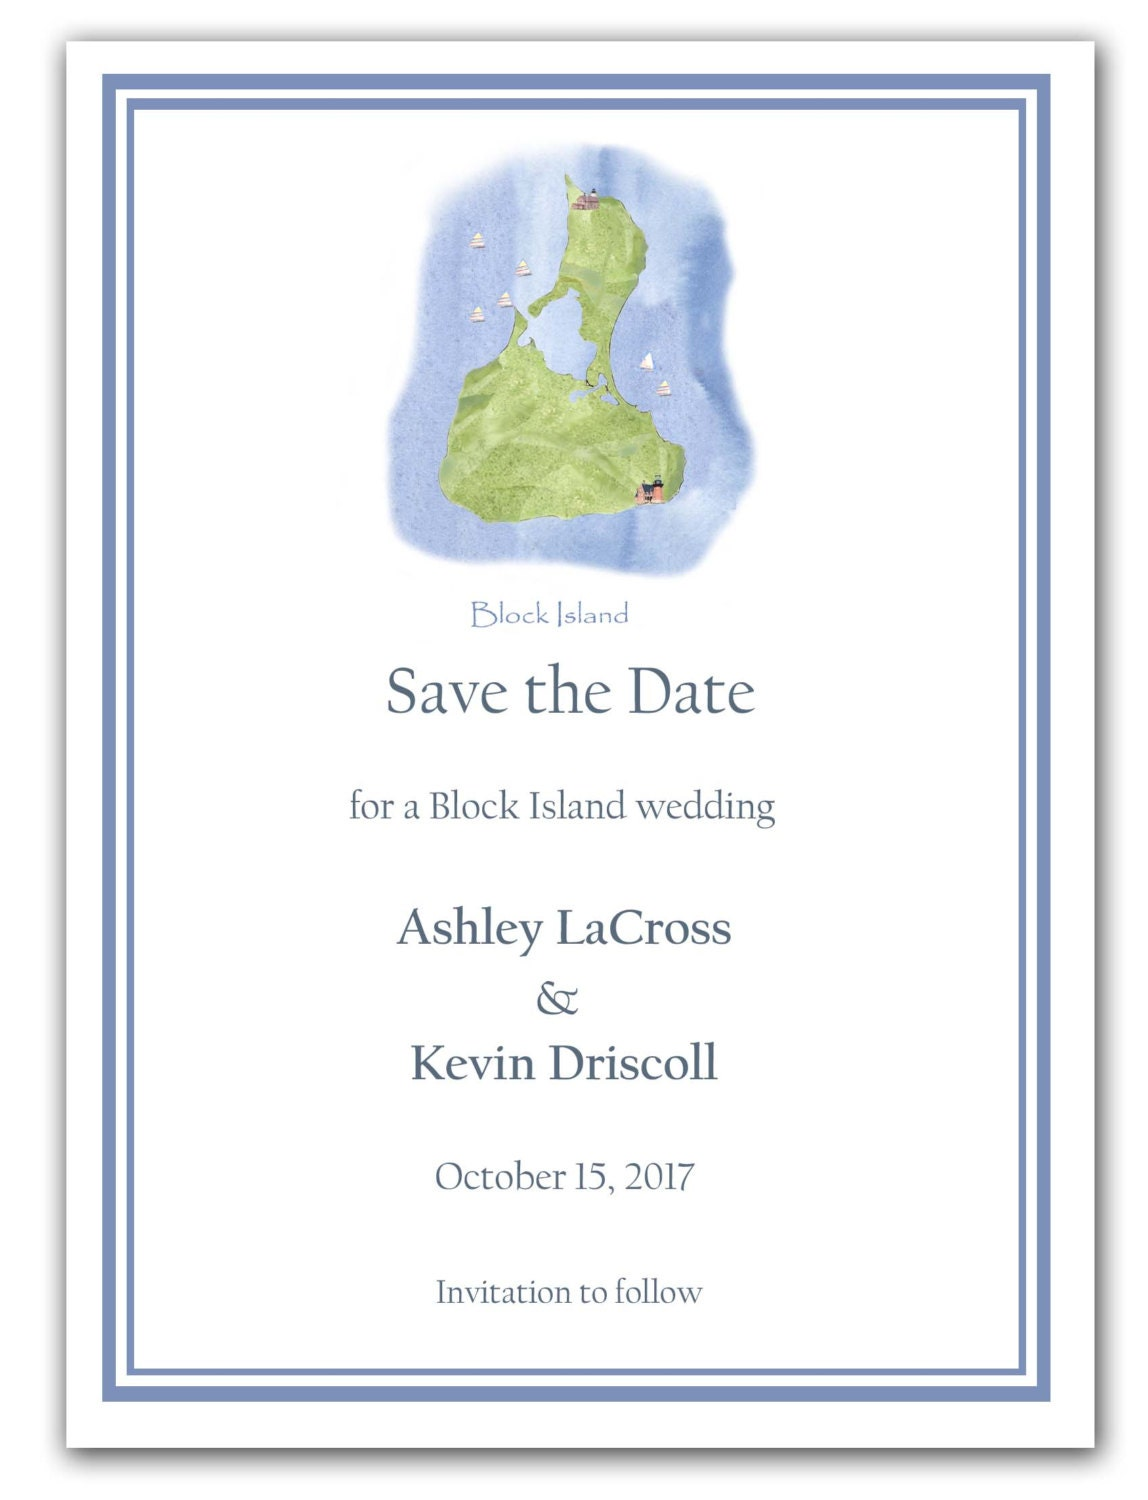 Block Island wedding invitations rehearsal dinner